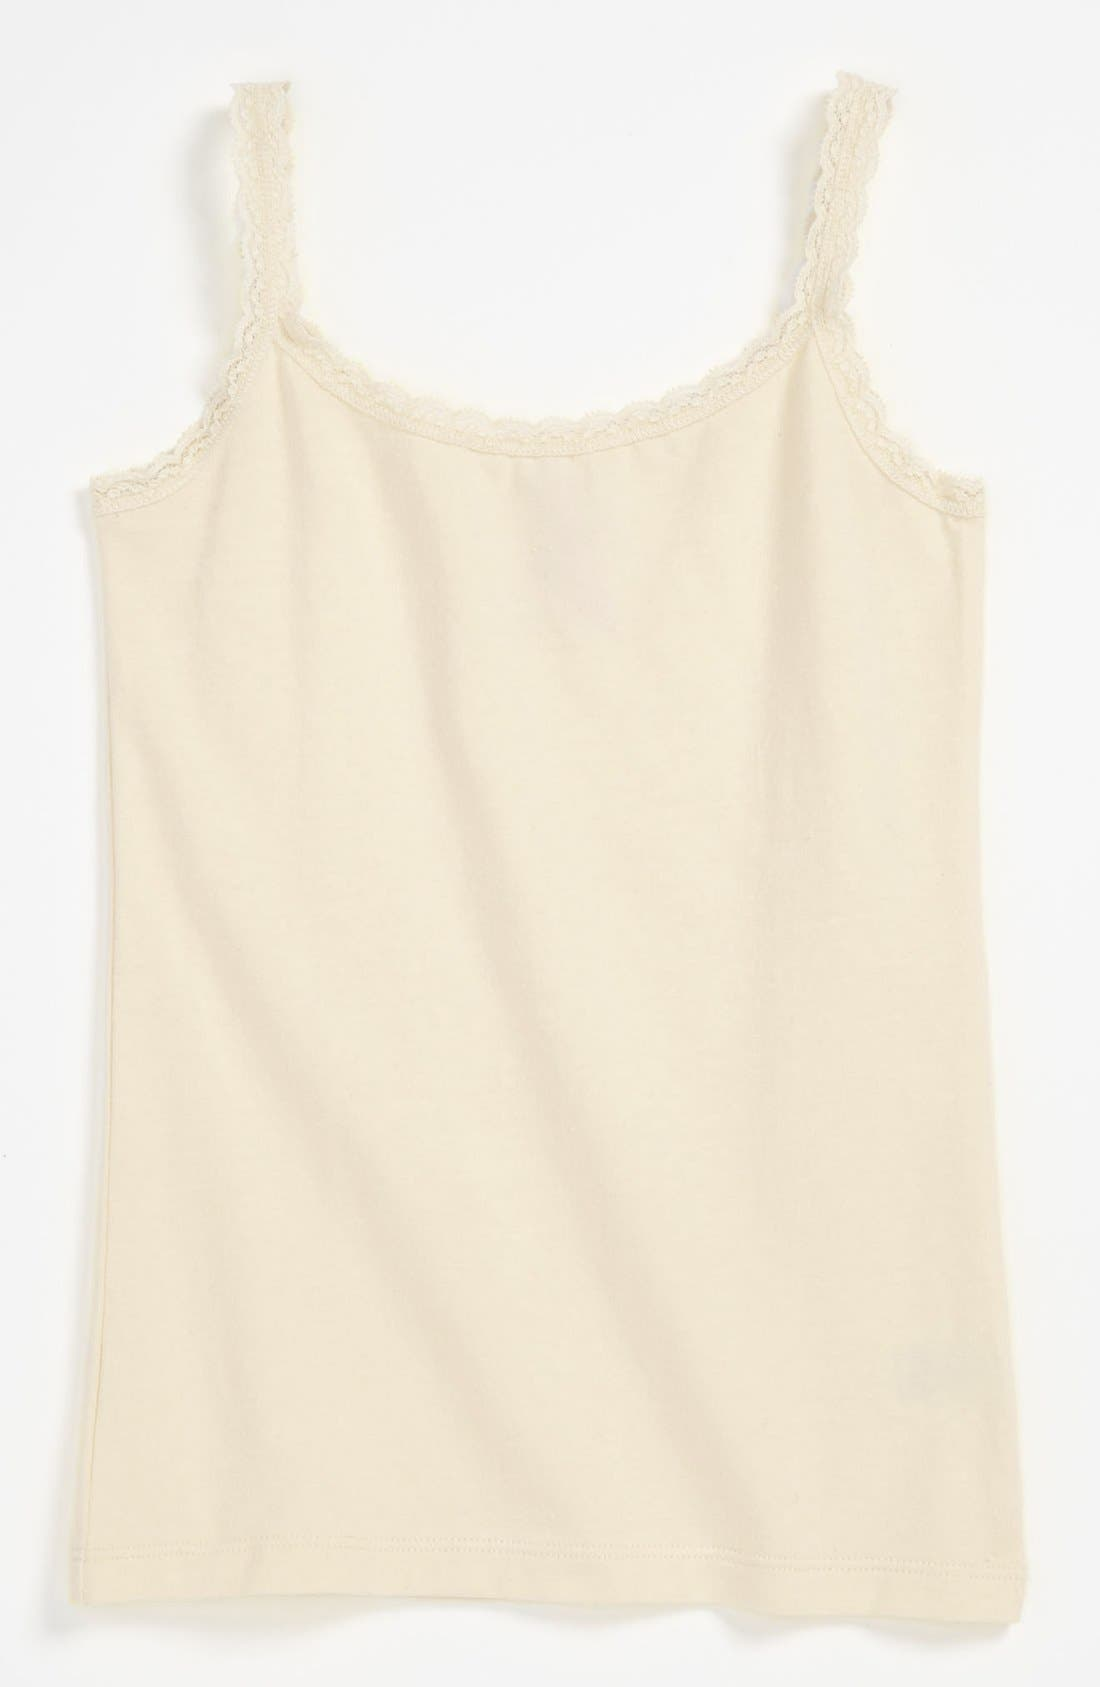 Alternate Image 1 Selected - Ruby & Bloom 'Rose' Tank Top (Little Girls)